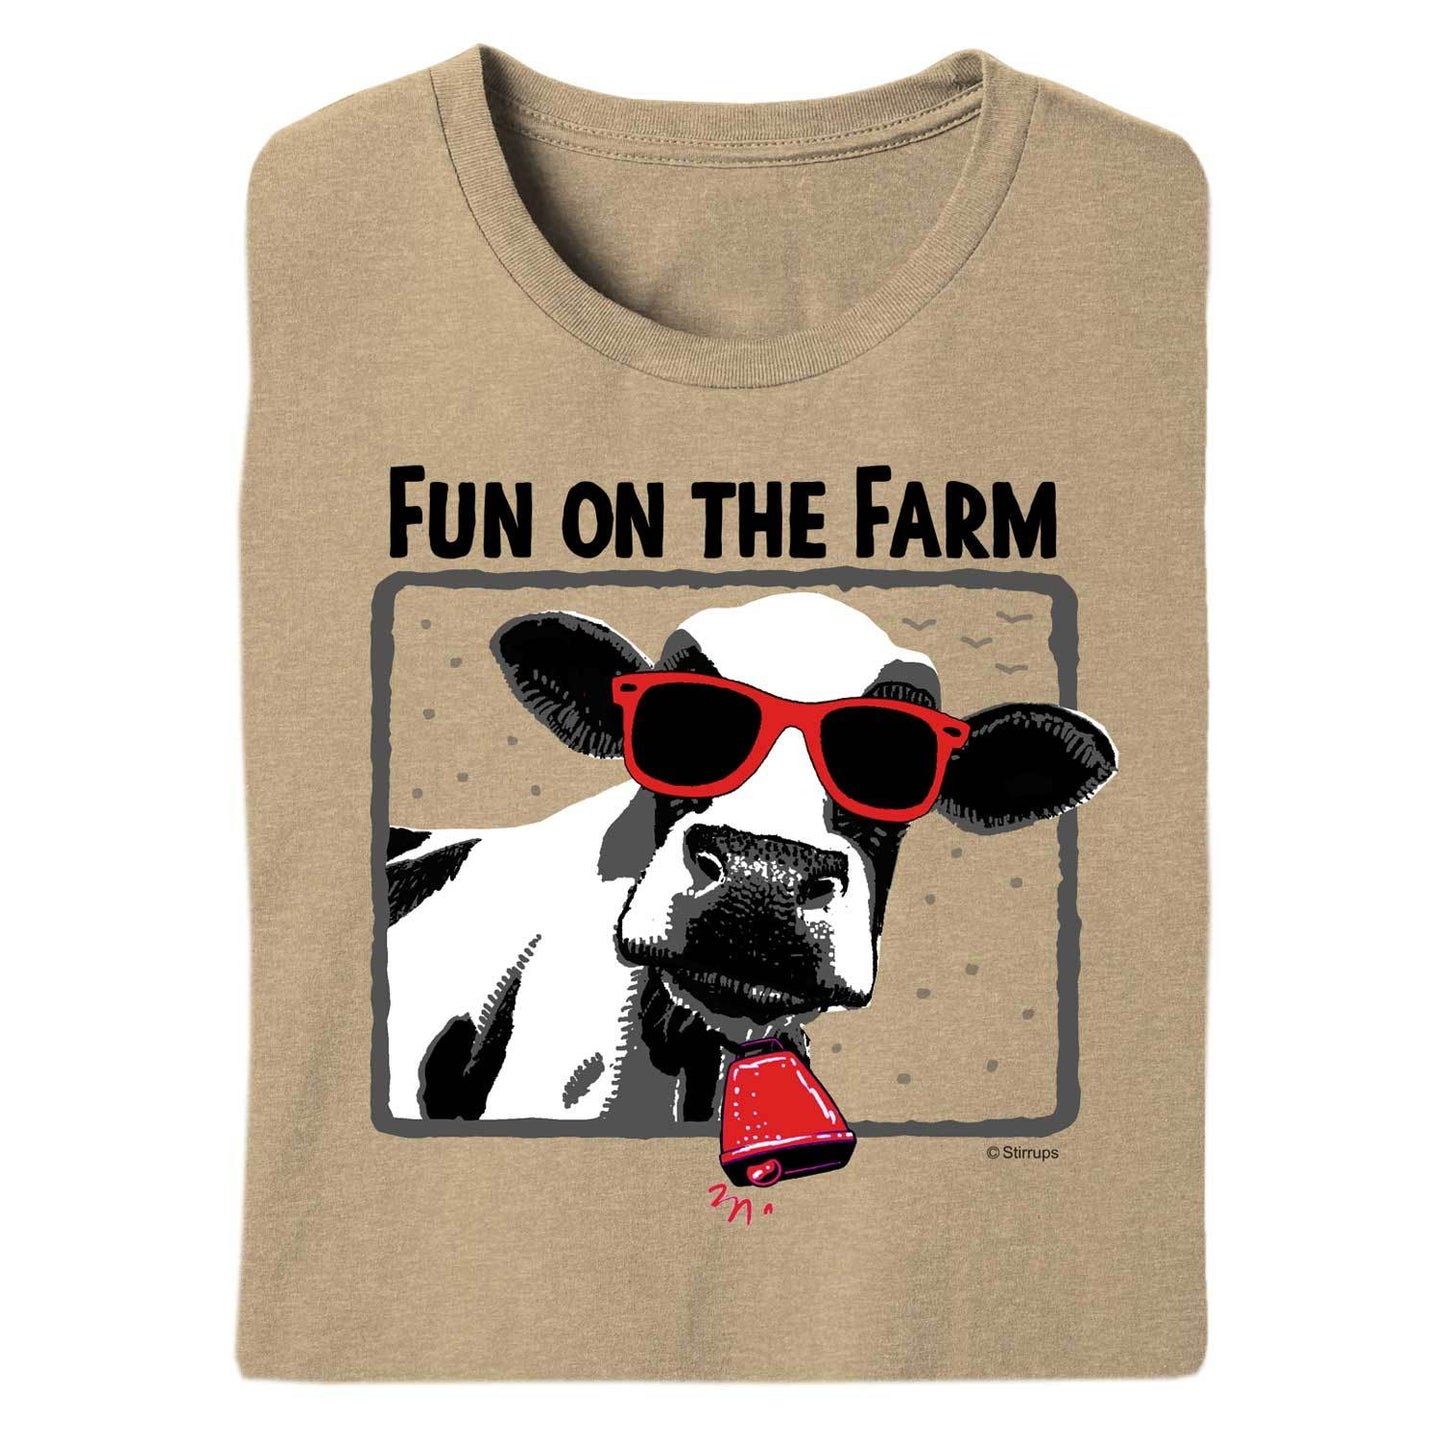 Fun on the Farm Adult Short Sleeve Tee